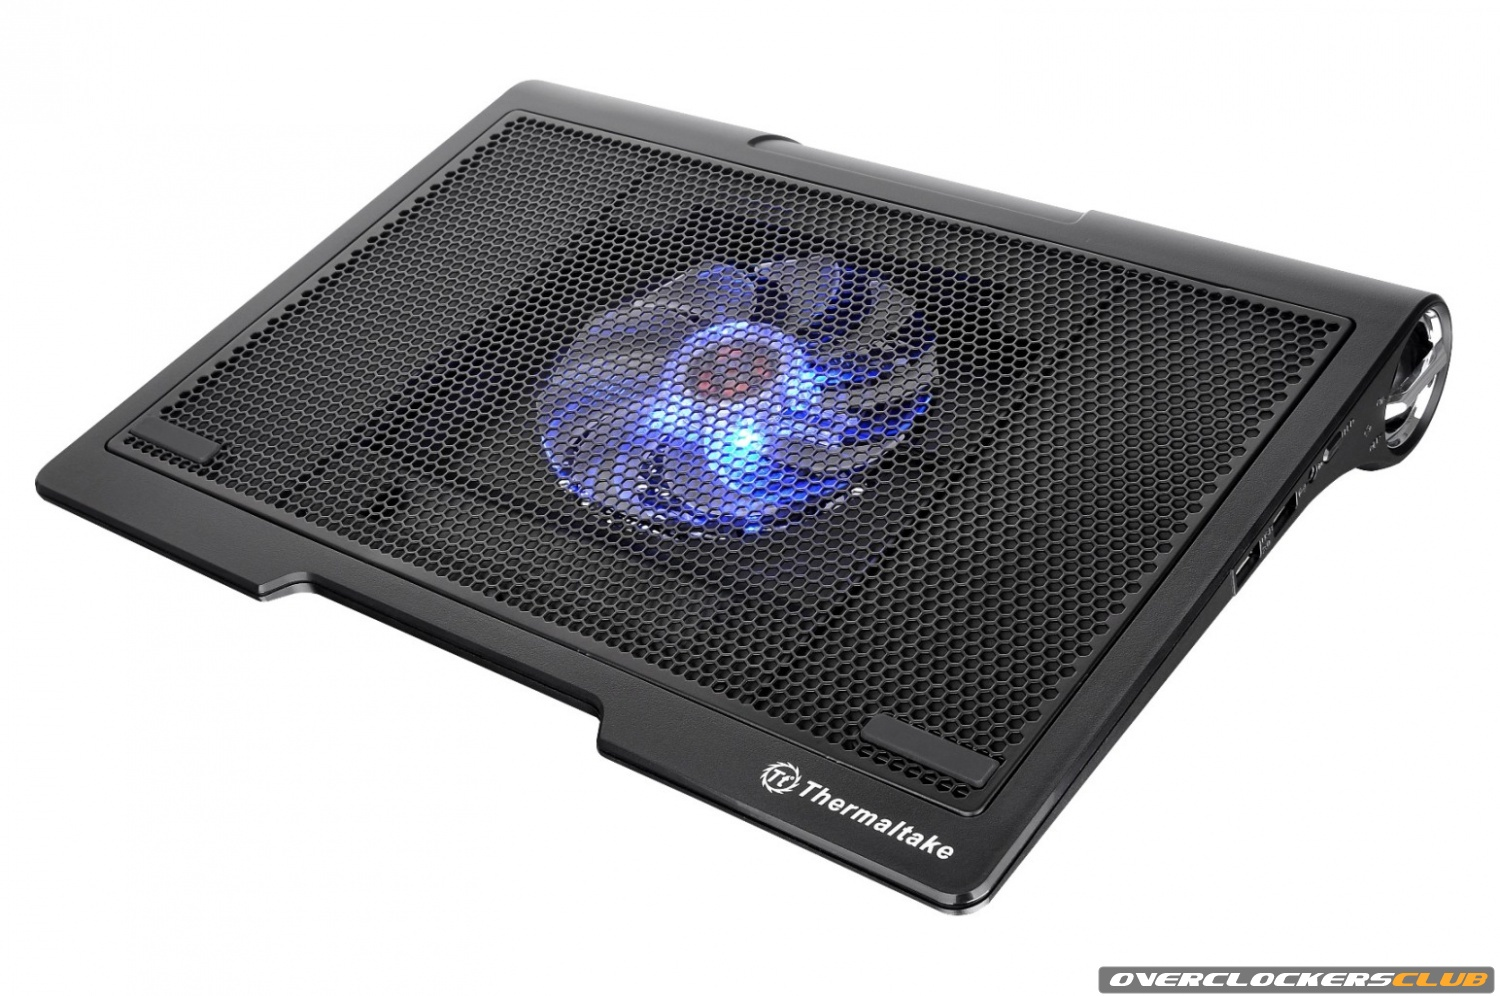 Thermaltake Announces the Massive SP Laptop Cooler